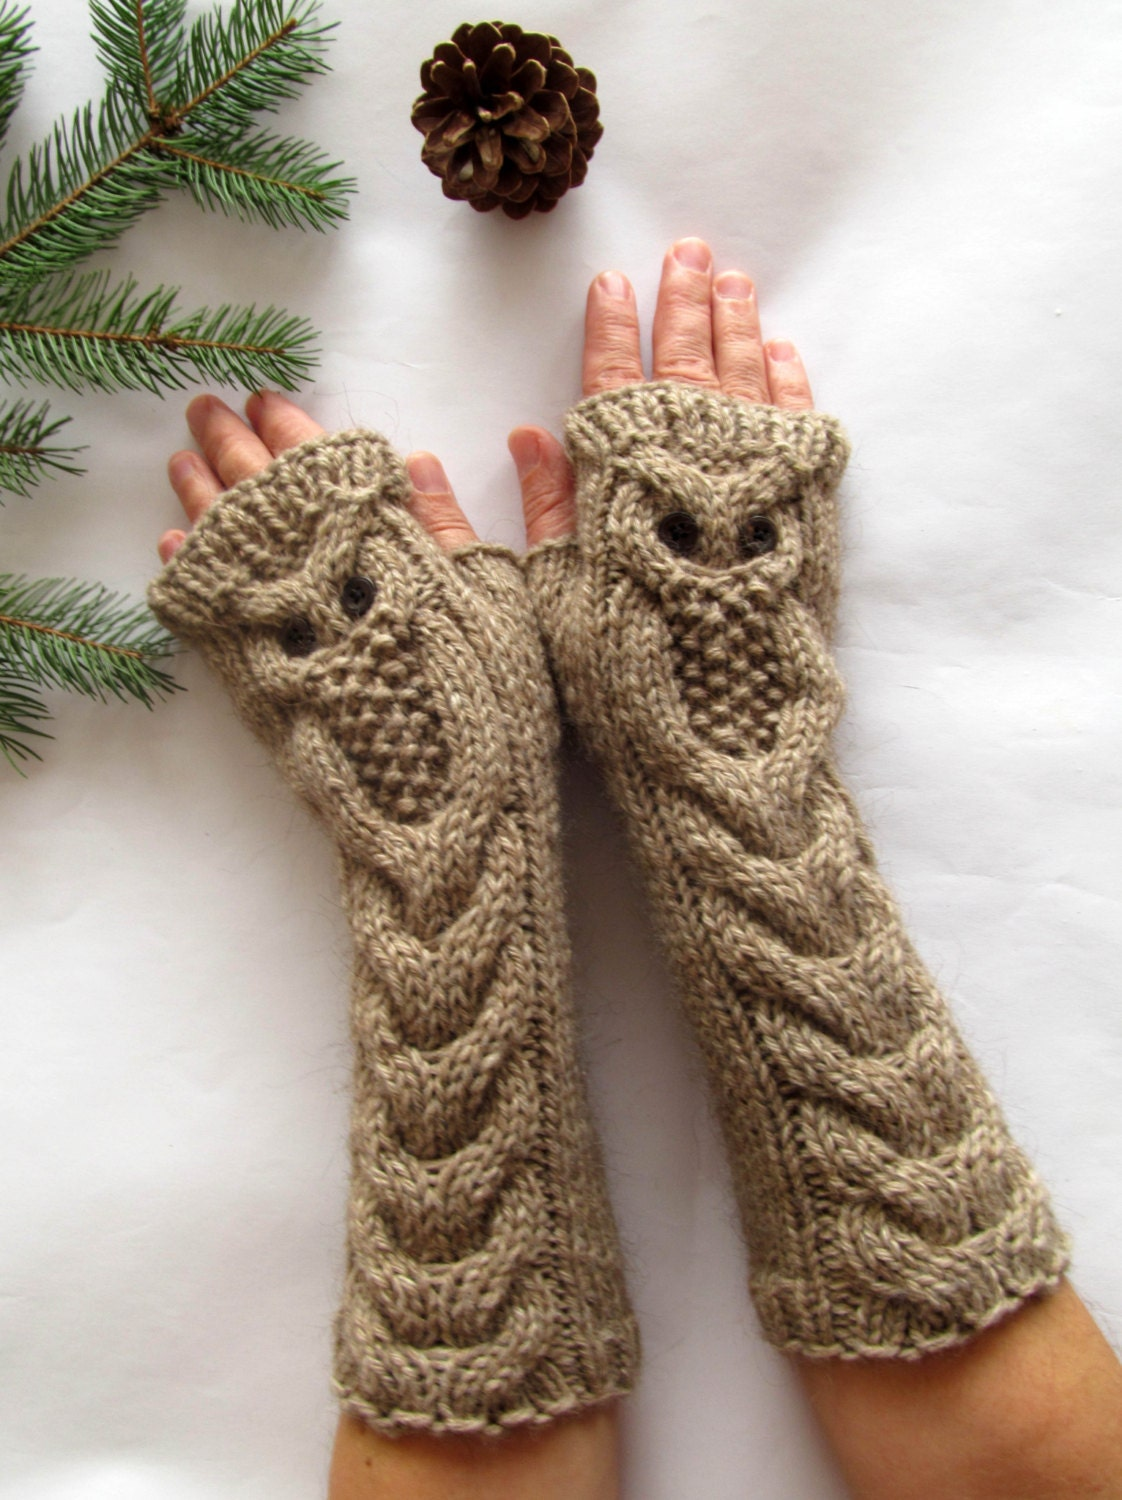 Owl Alpaca Light Brown Beige Long Hand Knit Cable by nastiadi